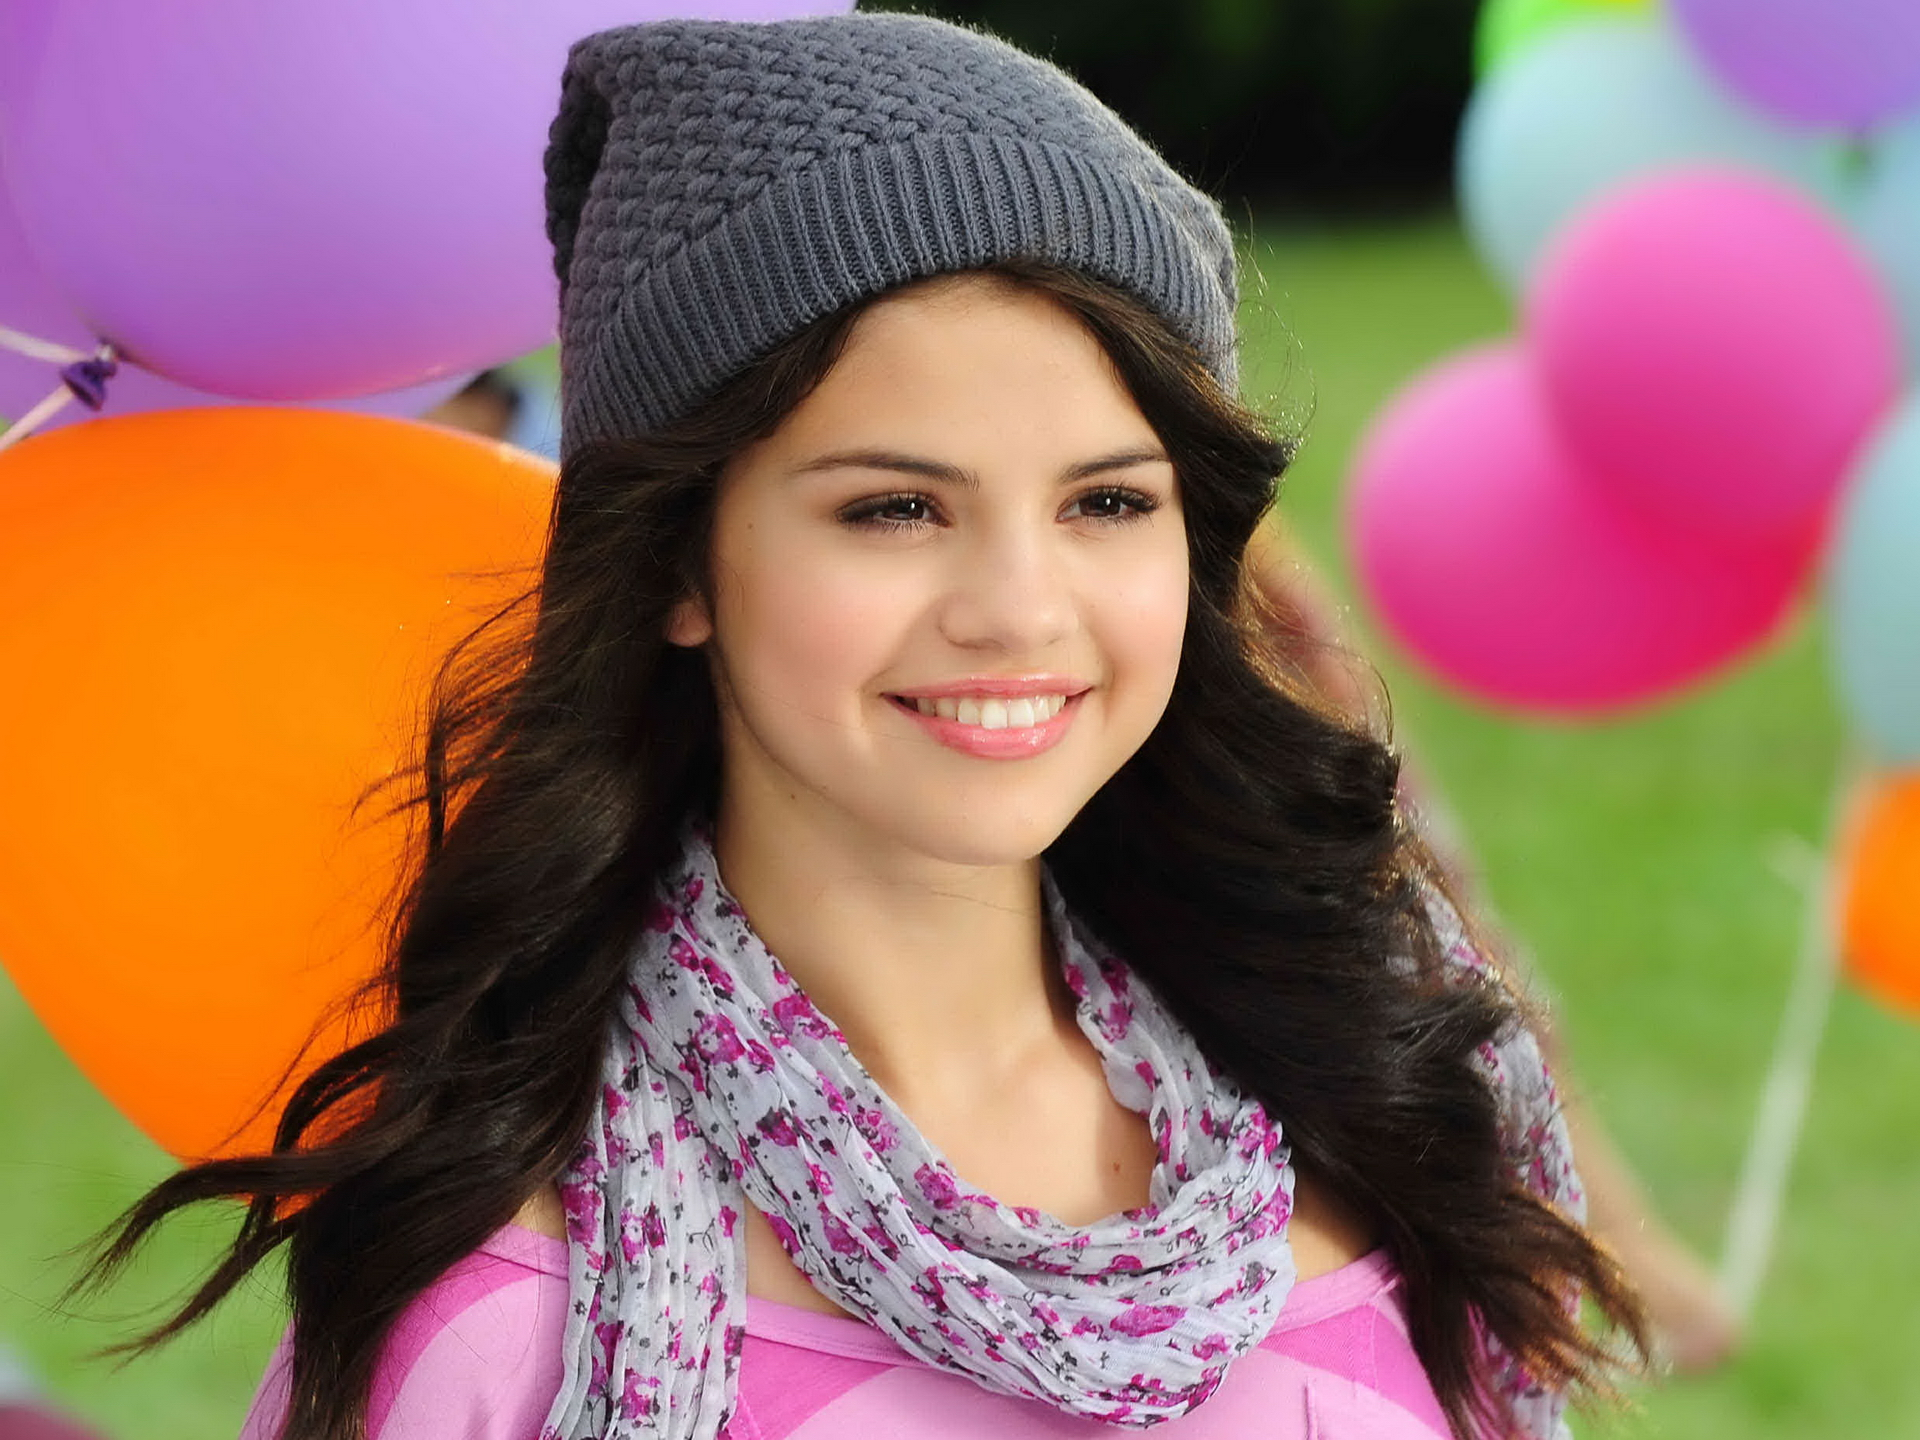 Selena Gomez on wizards of waverly place harperella